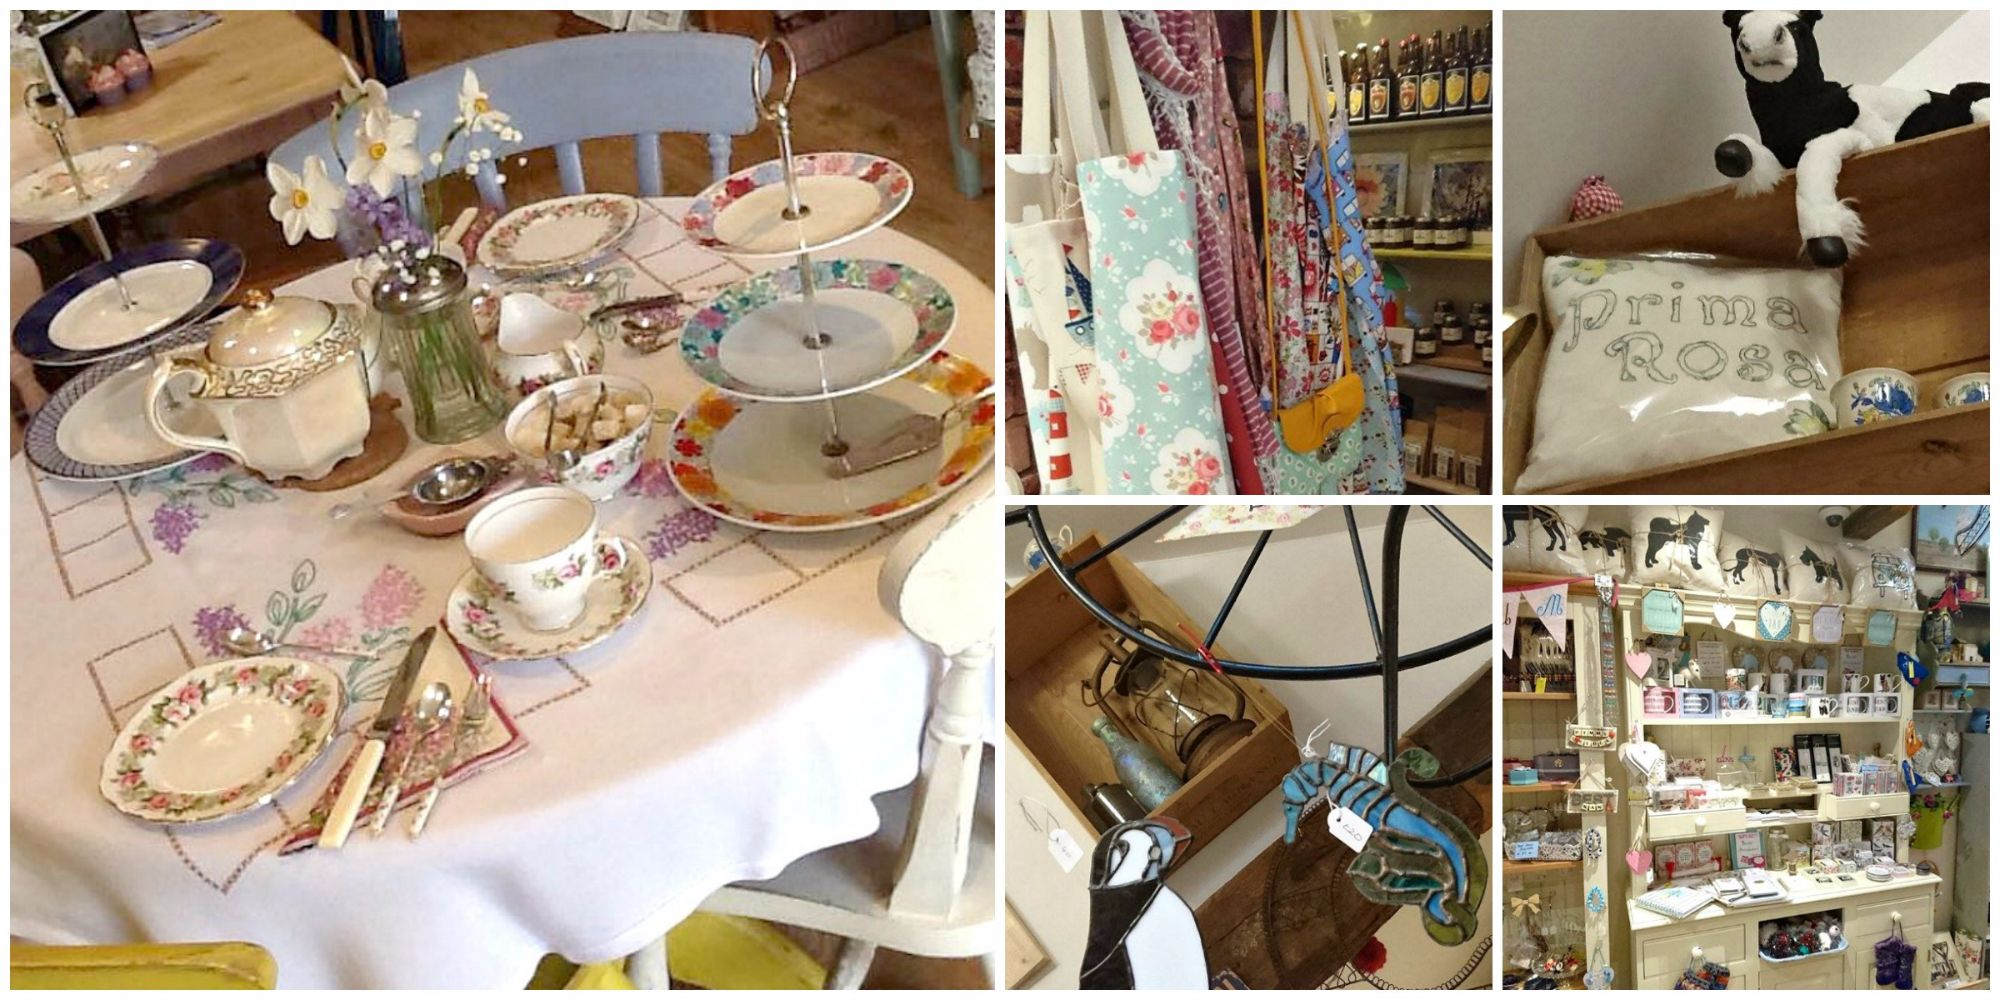 Quirky views and close up of what's inside Prima Rosa Tea Rooms in Salhouse, Norfolk